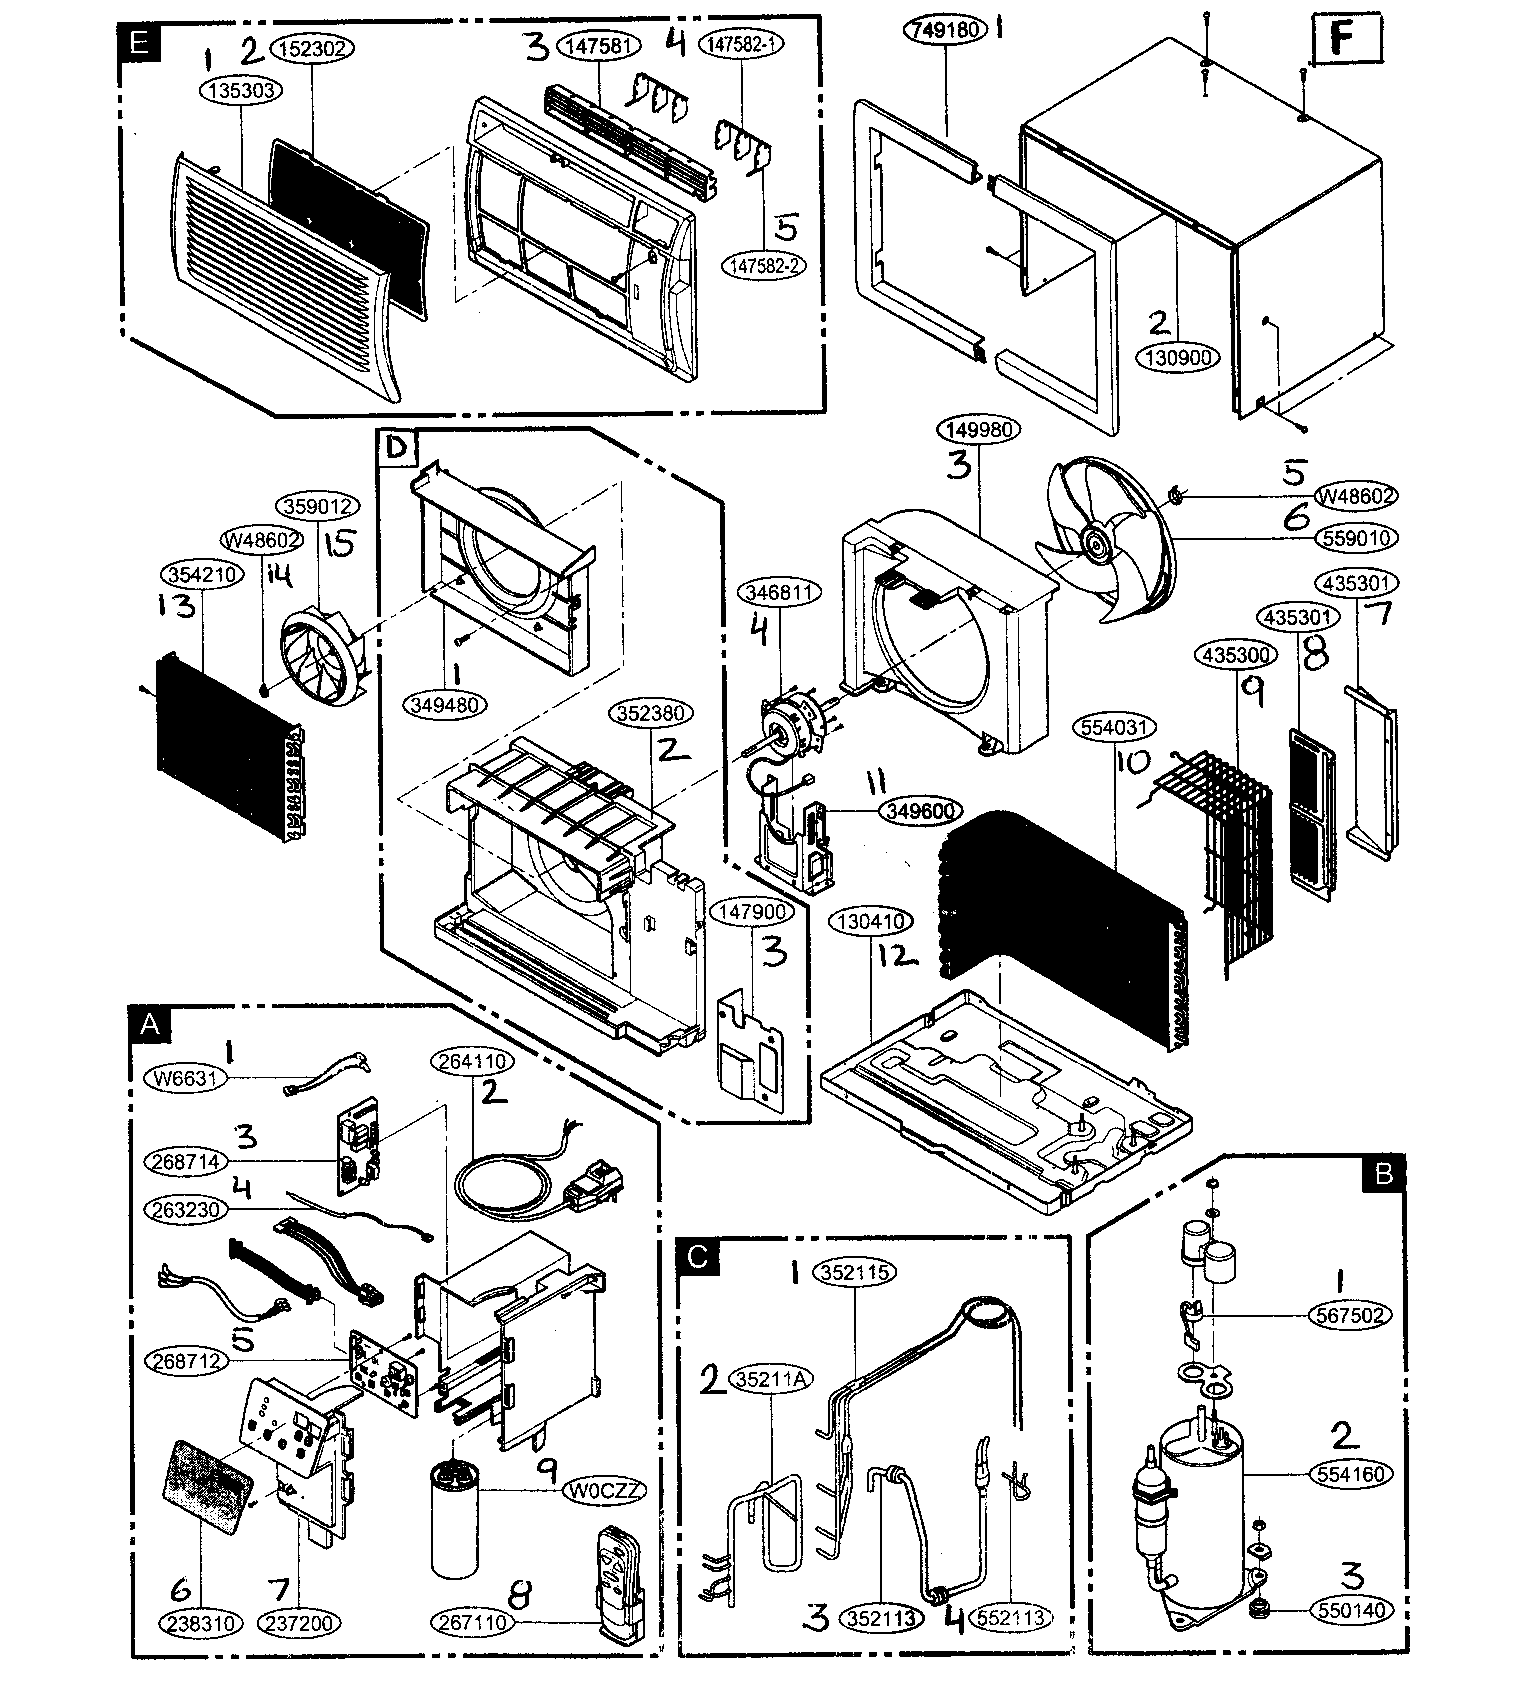 Wiring Diagram For A Ge Room Air Conditioner Model Asw18dls1